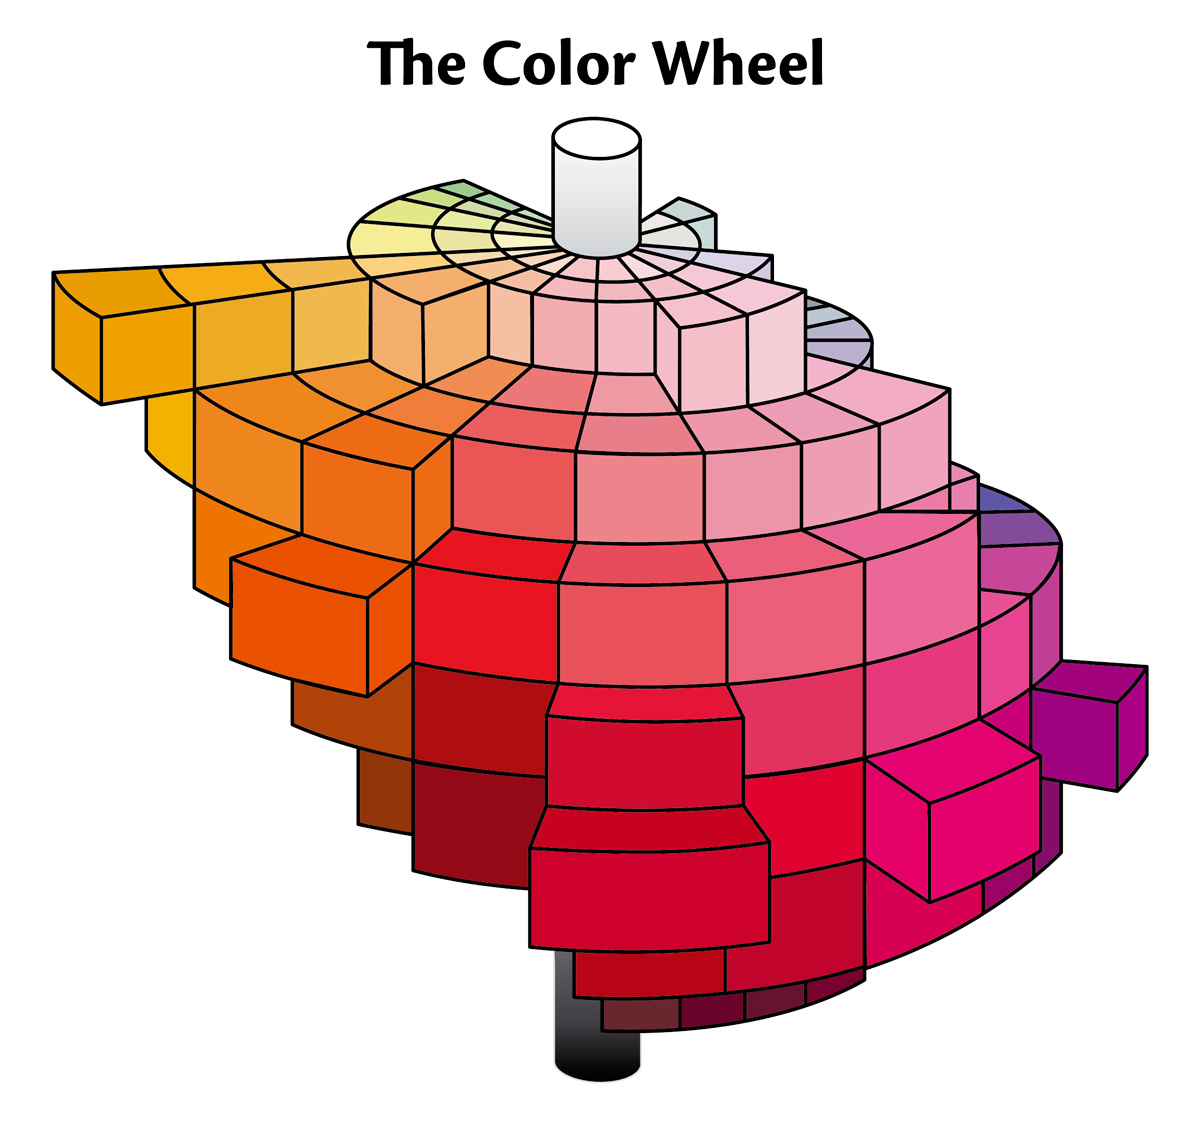 Three-dimensional view of a color solid. Illustration courtesy of Minolta USA